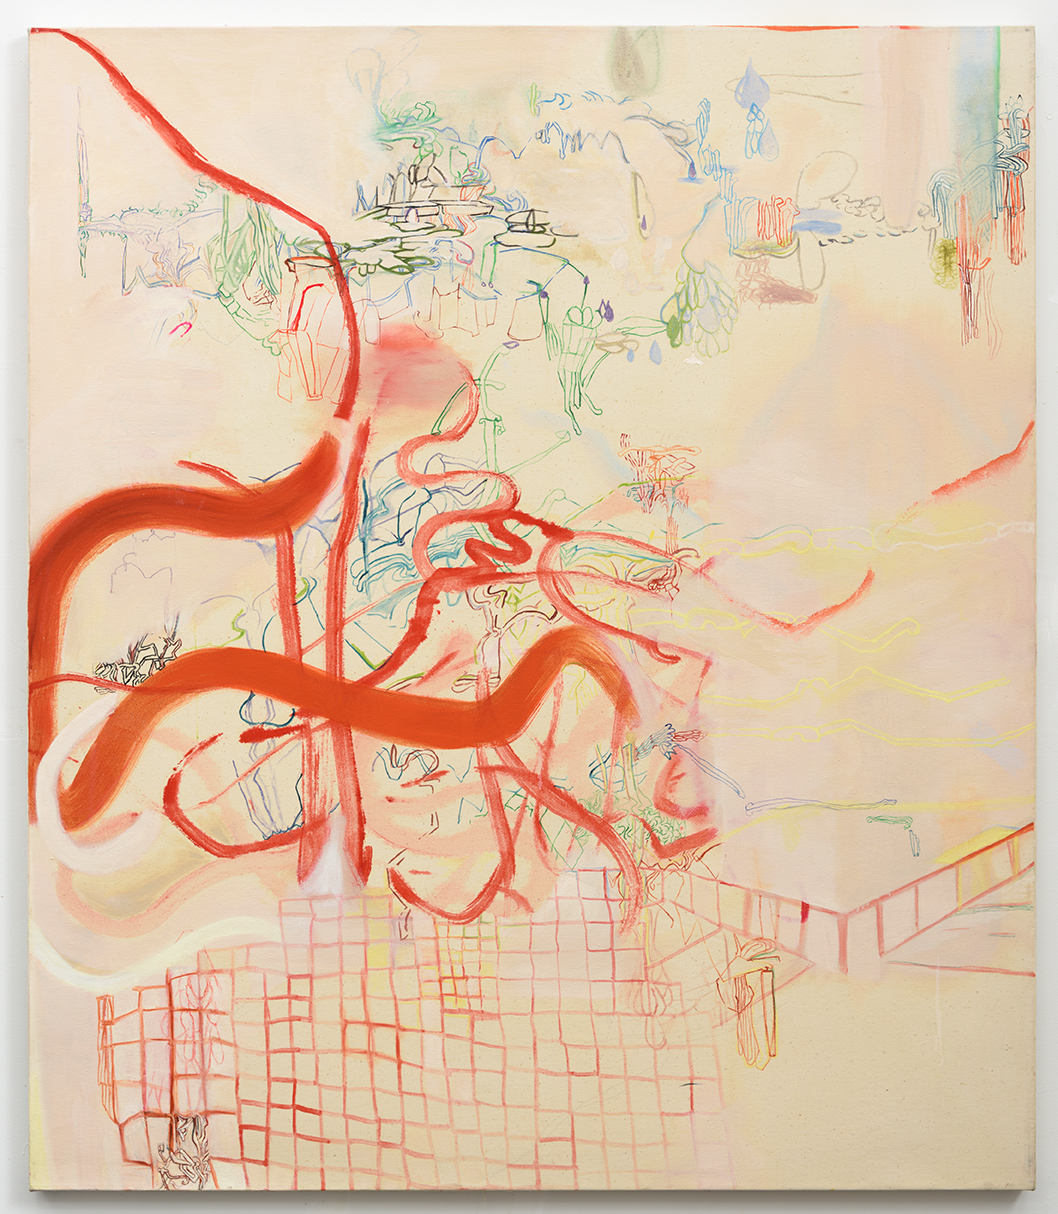 Rebeca Puga  Wide Terrace,  2012 Oil on canvas 60 x 52 inches